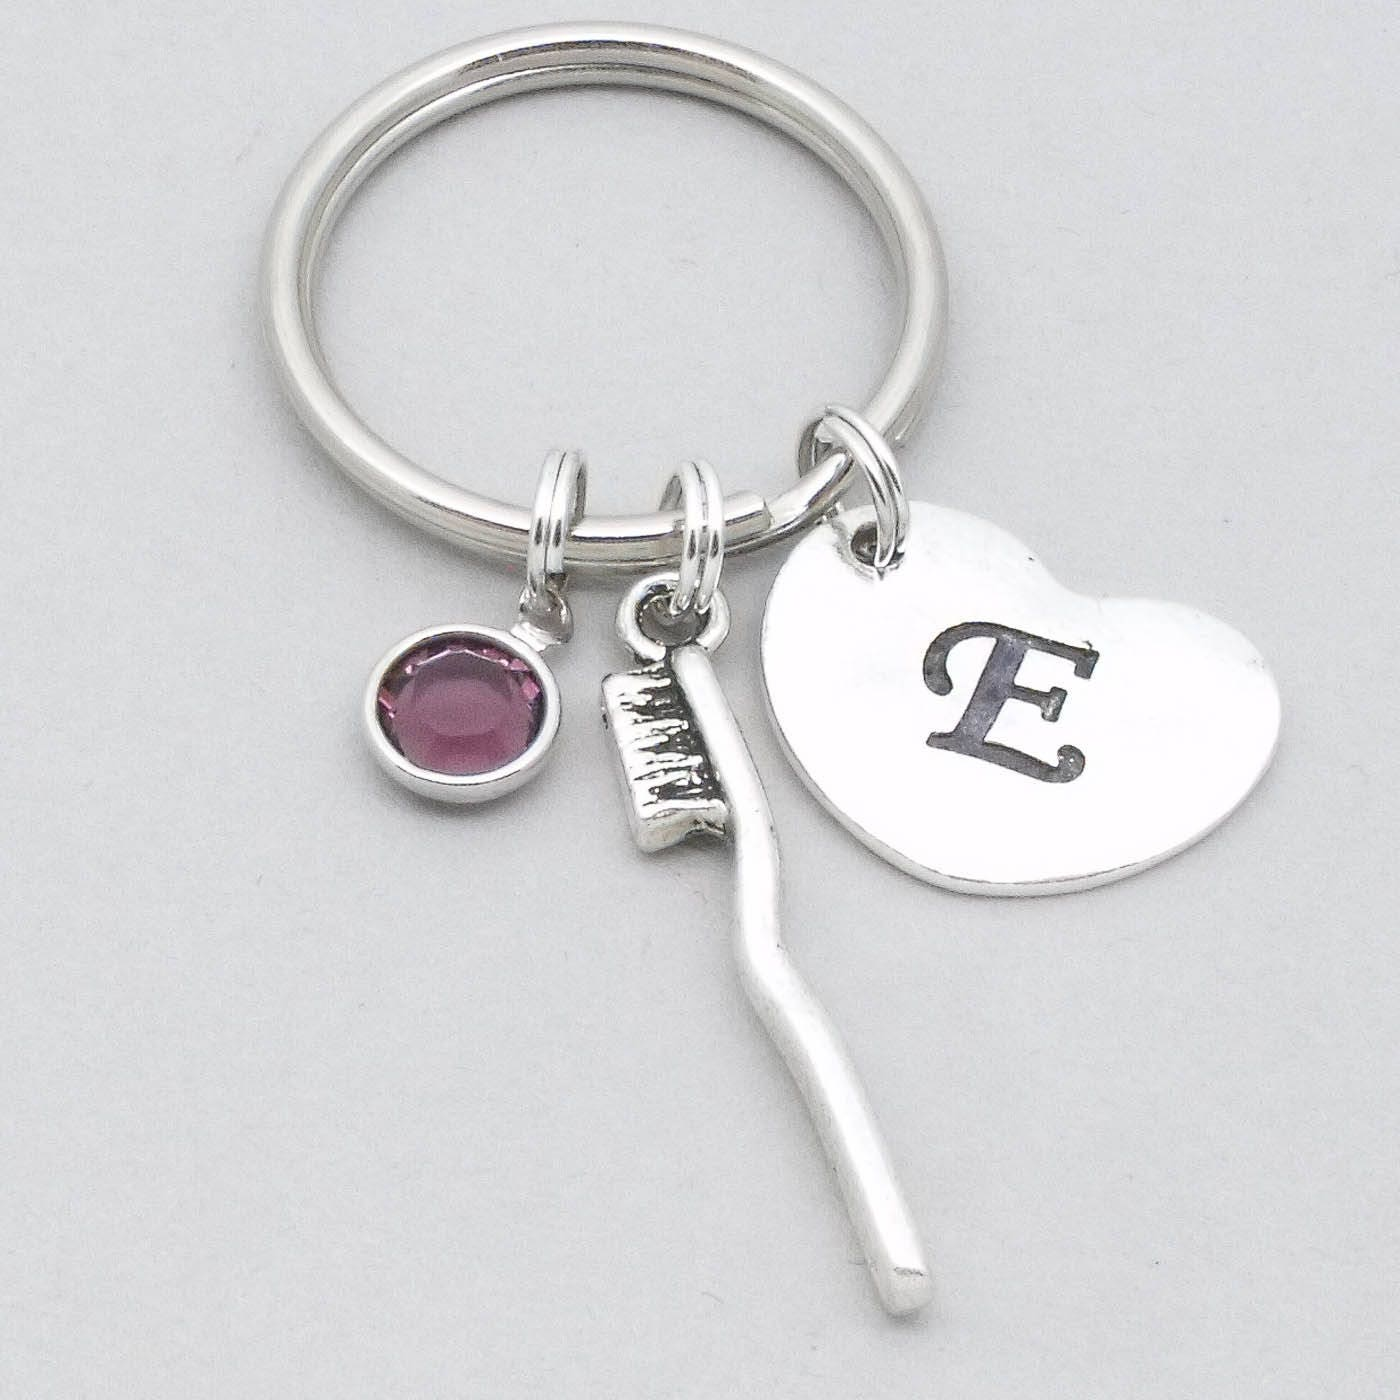 Toothbrush keyring  toothbrush keychain  personalised dentist gift  dental nurse gift  dental hygienist  heart initial